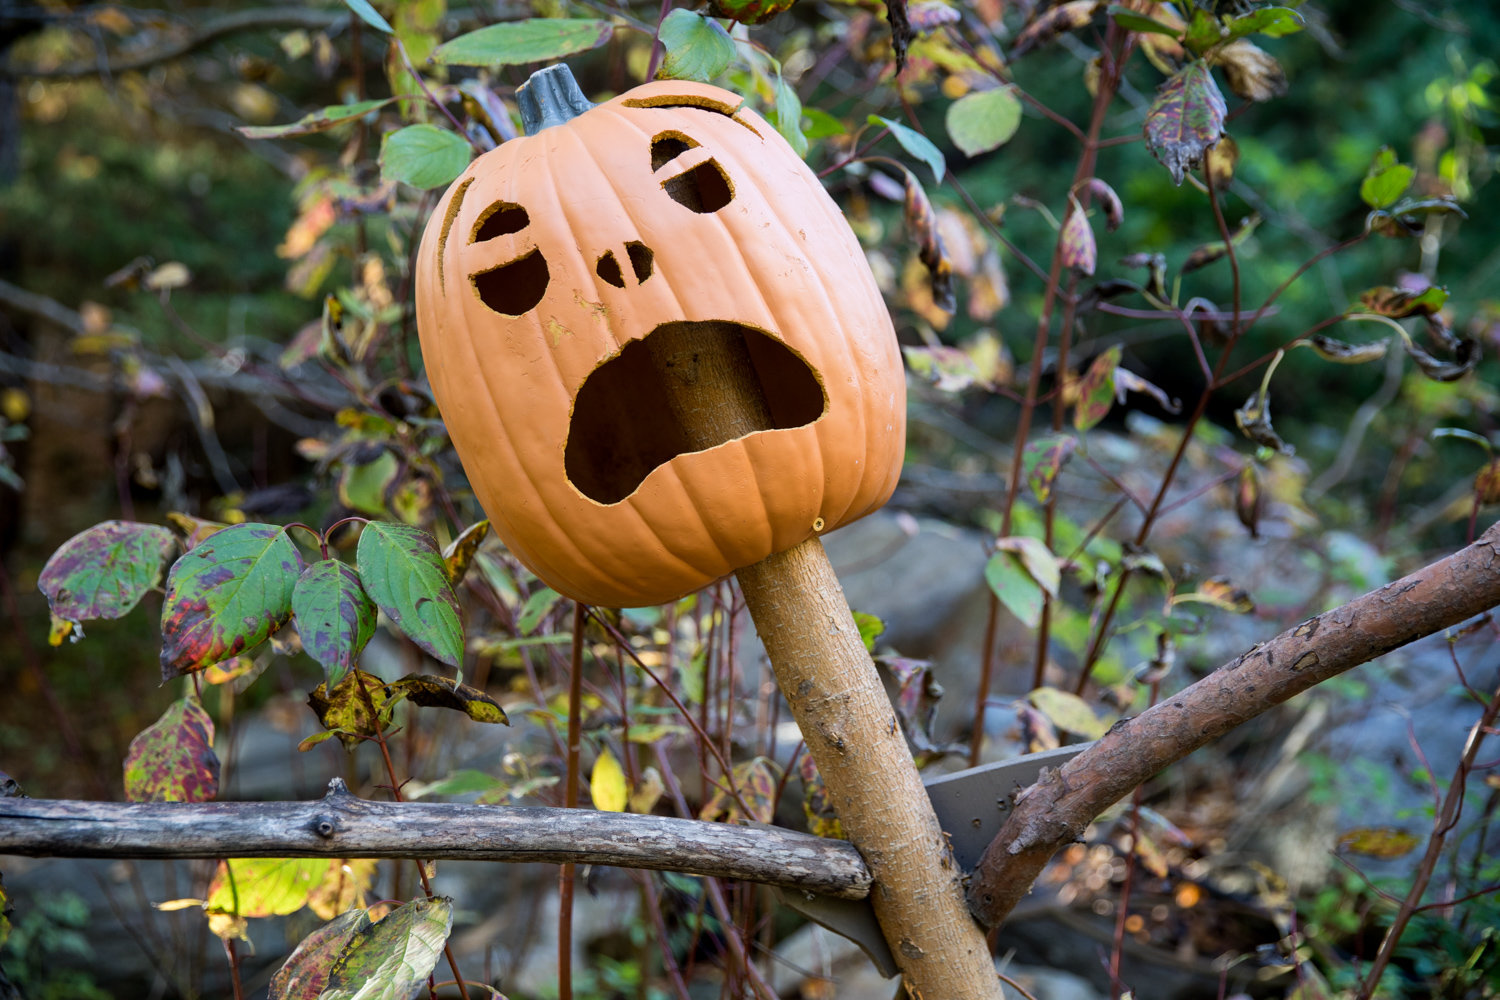 A spooked pumpkin scarecrow looks aghast in the Everett Children's Adventure Garden at the New York Botanical Garden.